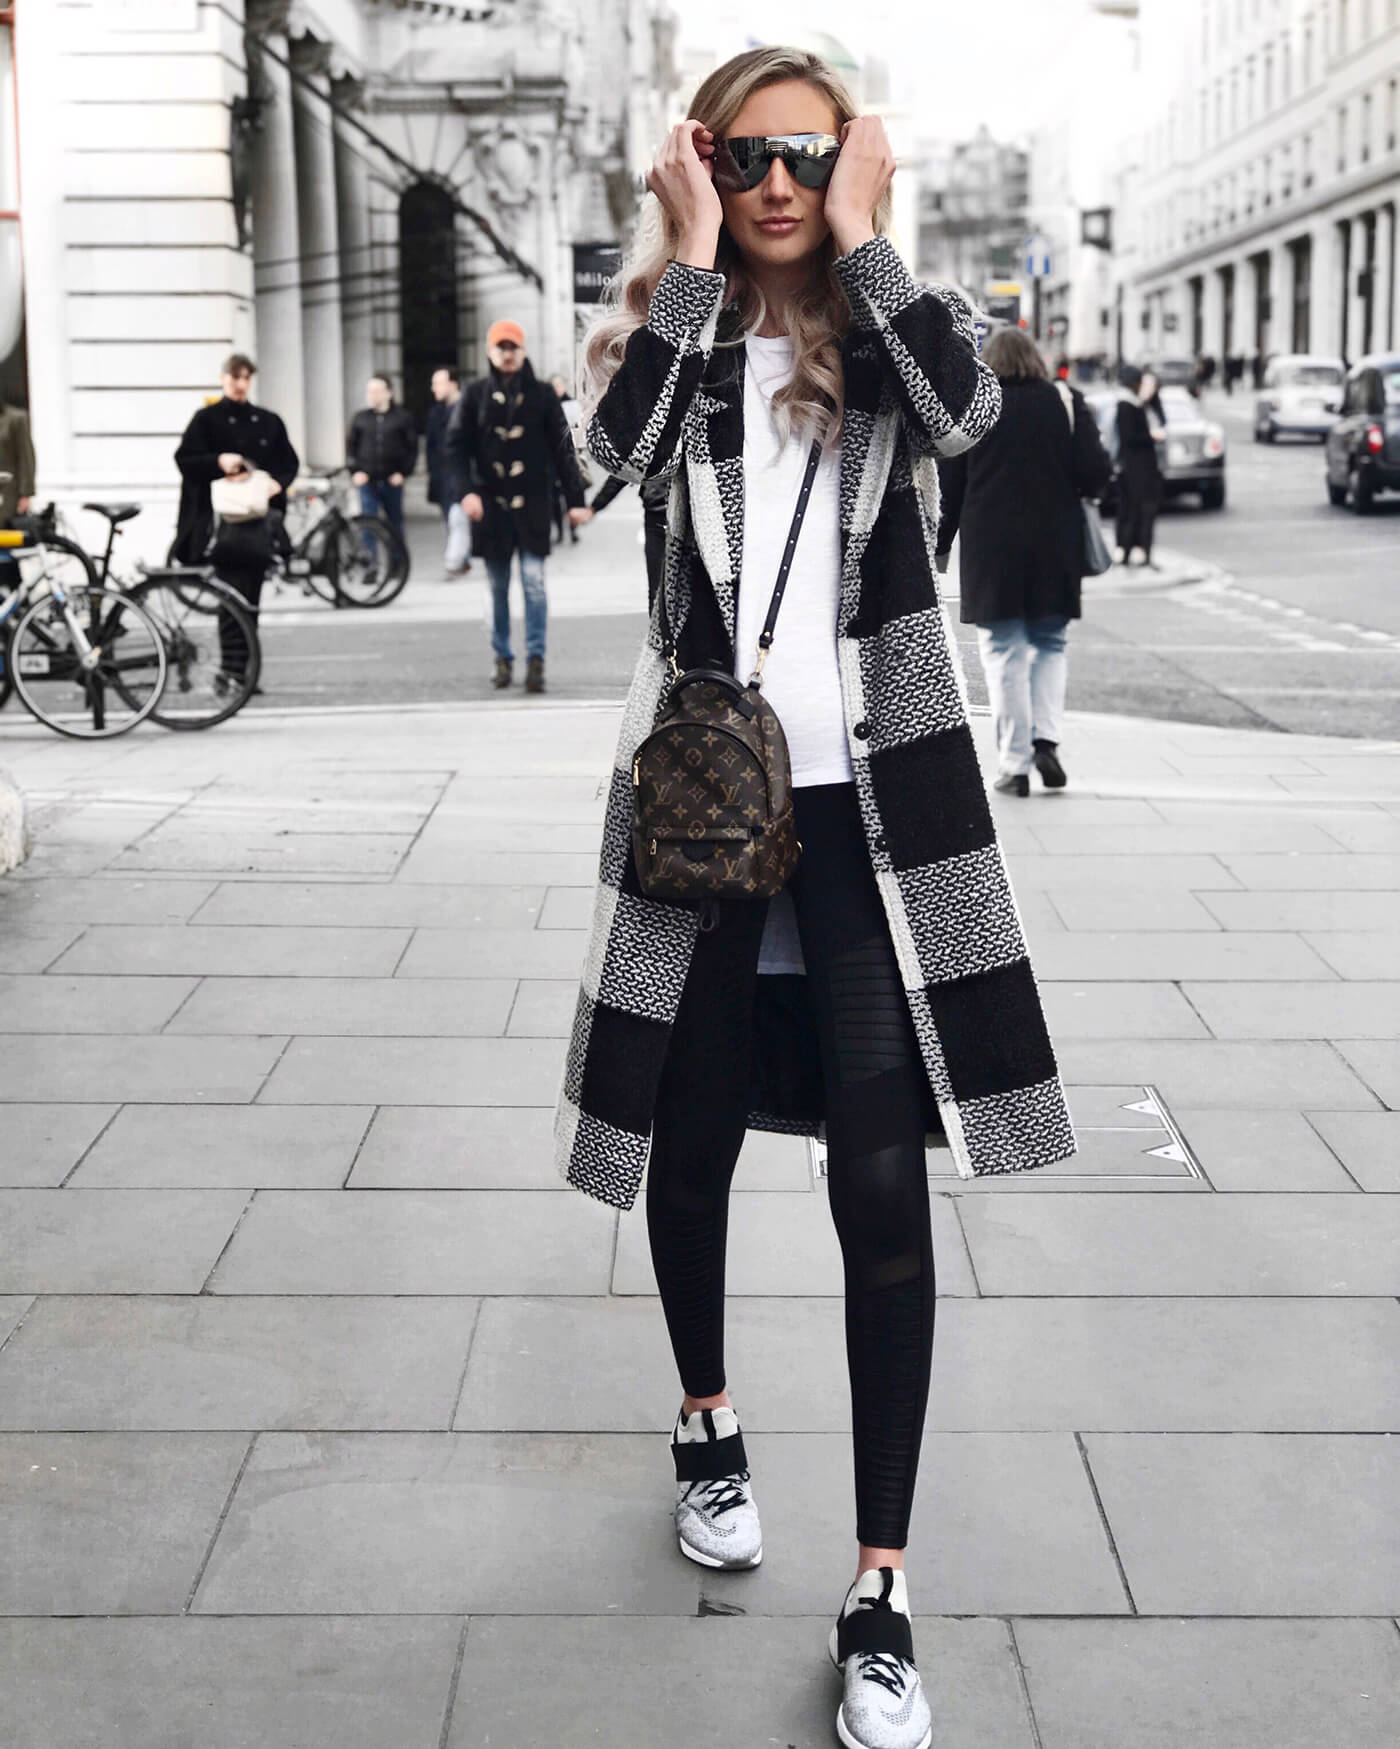 Carly Cristman in London wearing a plaid coat with nike air zoom sneakers and moto leggings